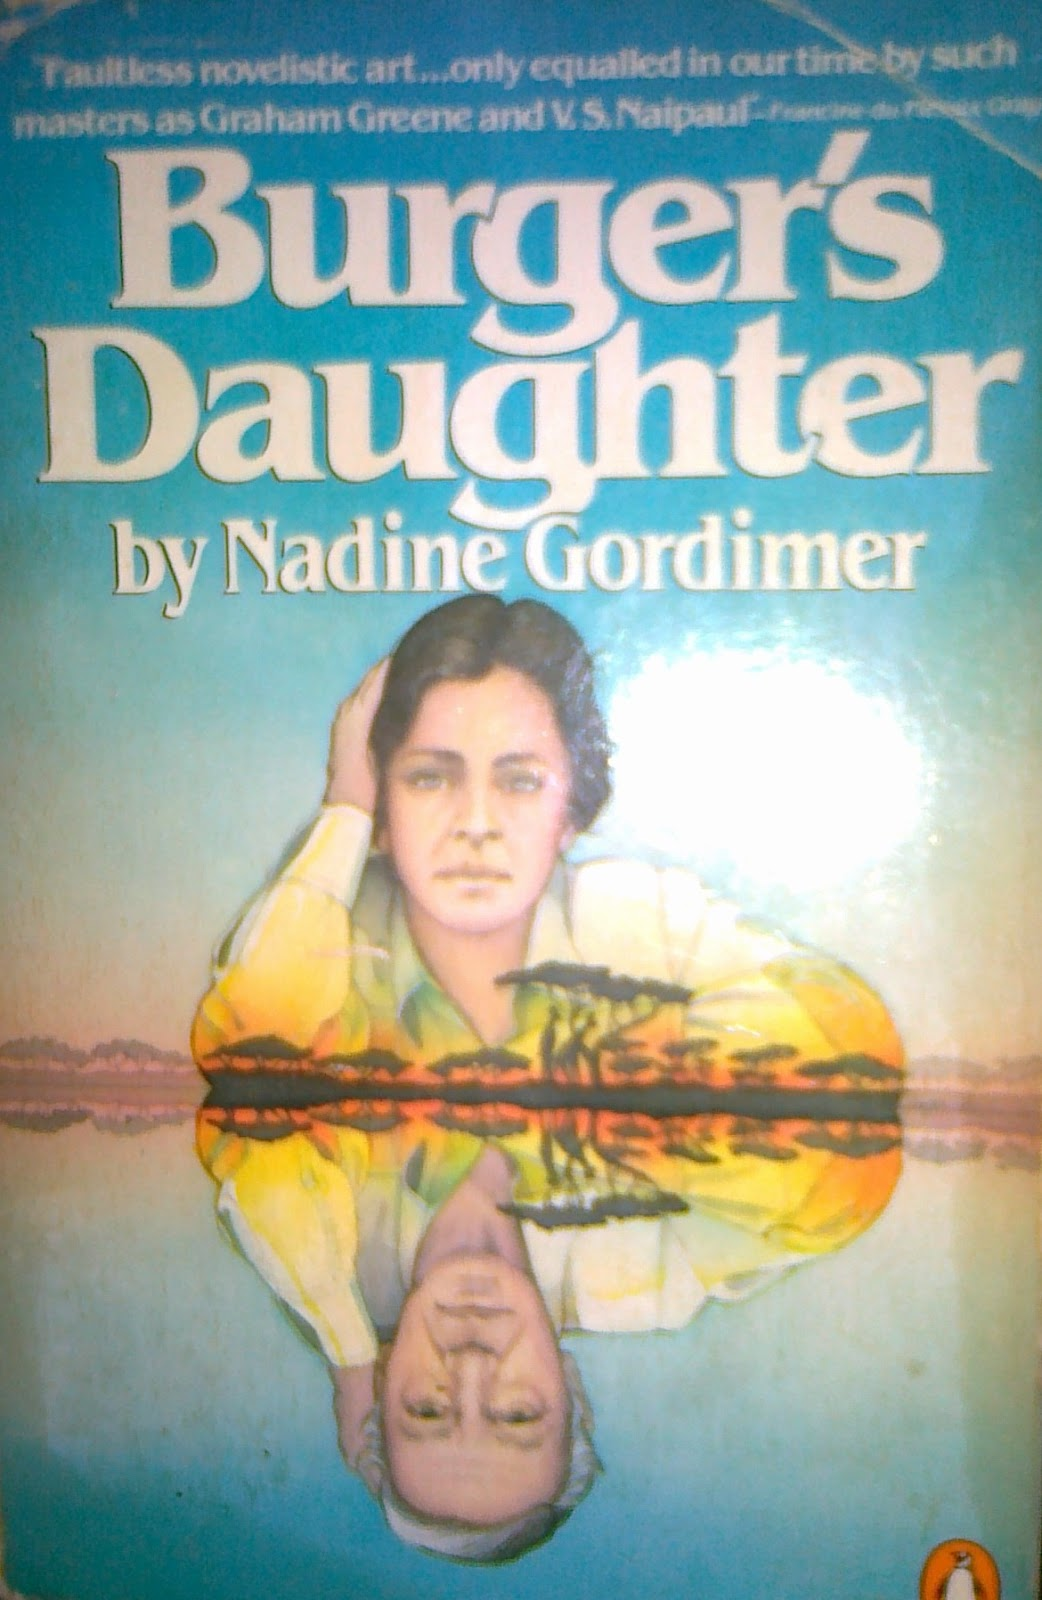 an analysis of sonnys search for peace in my sons story by nadine gordimer Nadine gordimer is winner of nobel prize in literature date: october 4, 1991, friday, late edition  the nobel peace prize is a political award, professor allen said, and it will be announced in oslo this is a literary award  my son's story, published in 1990, describes love in an insupportable society, the complications and.